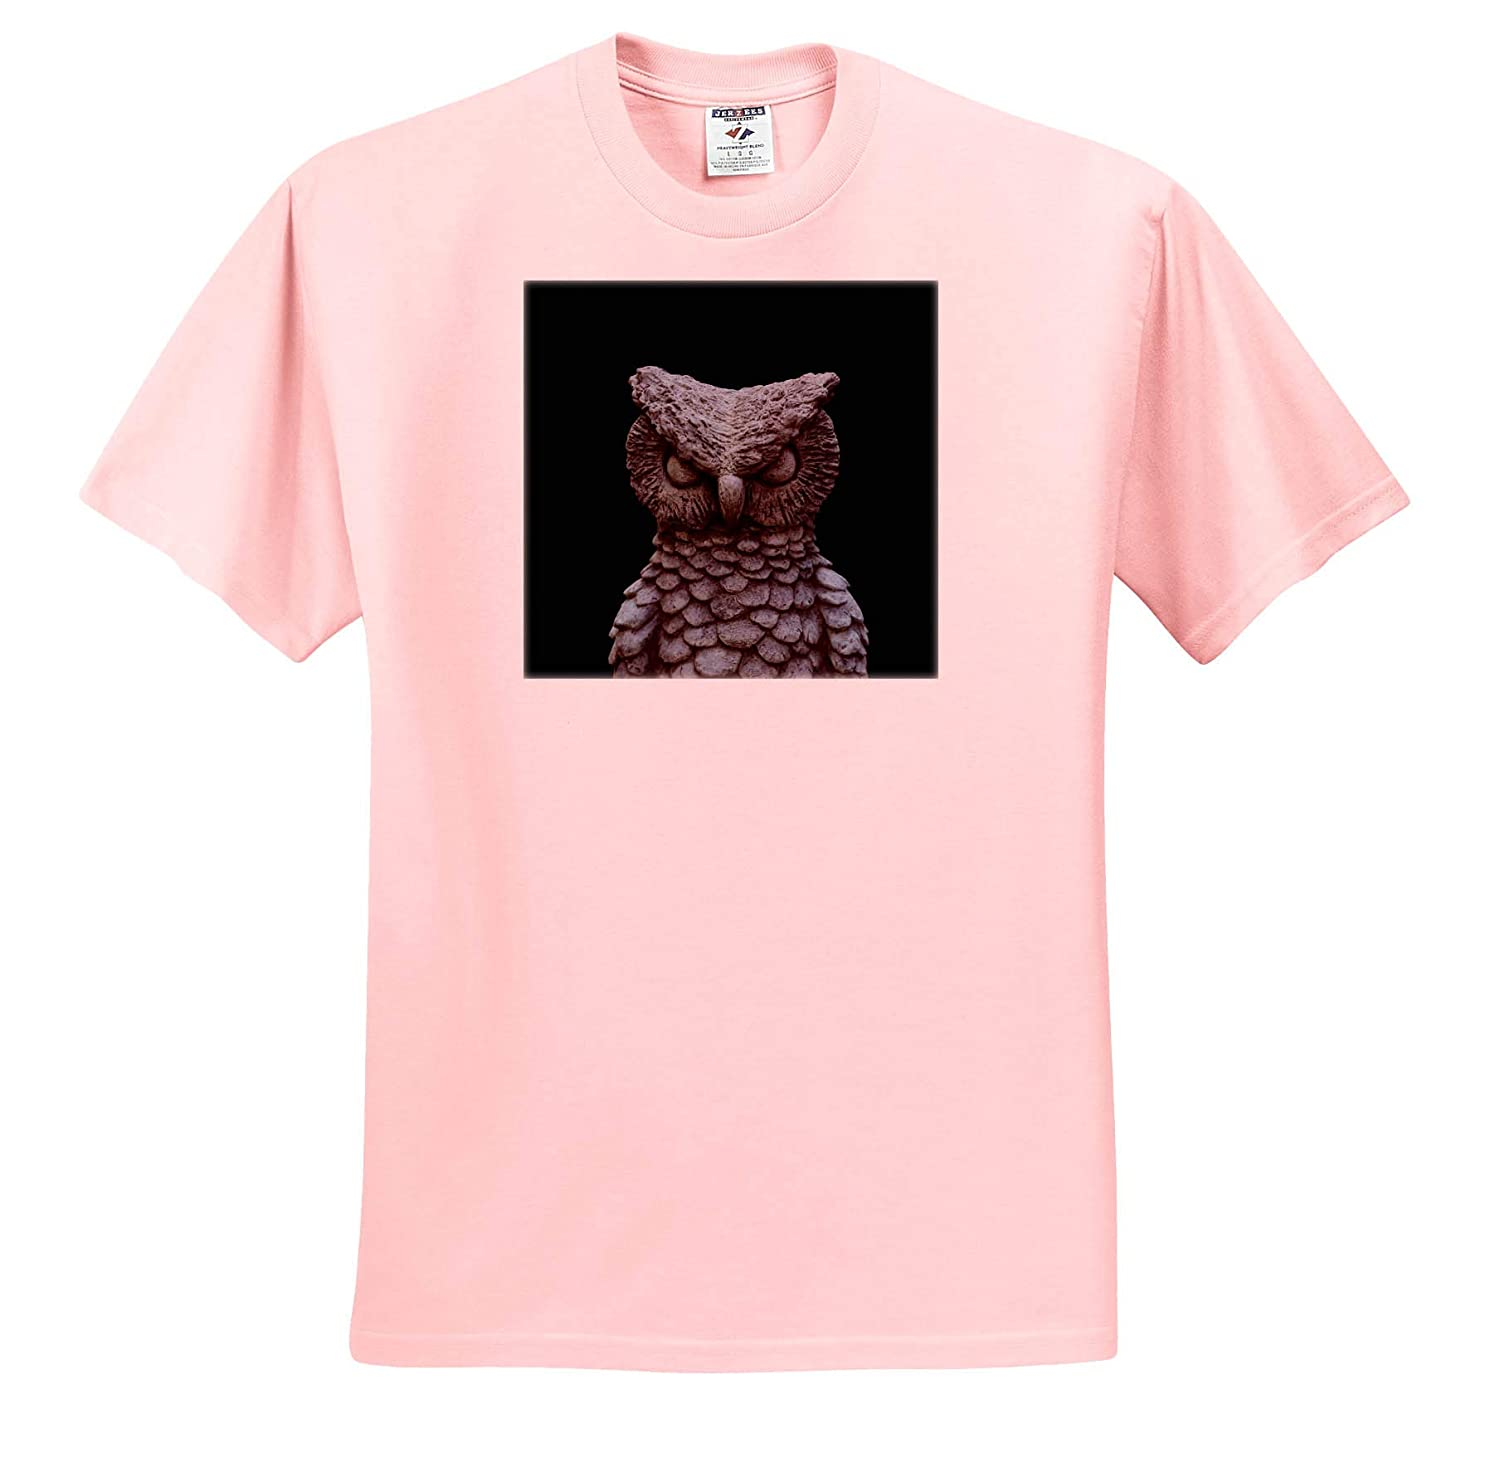 3dRose Stamp City - T-Shirts Black and White Close up Photograph of an owl Statue Miscellaneous